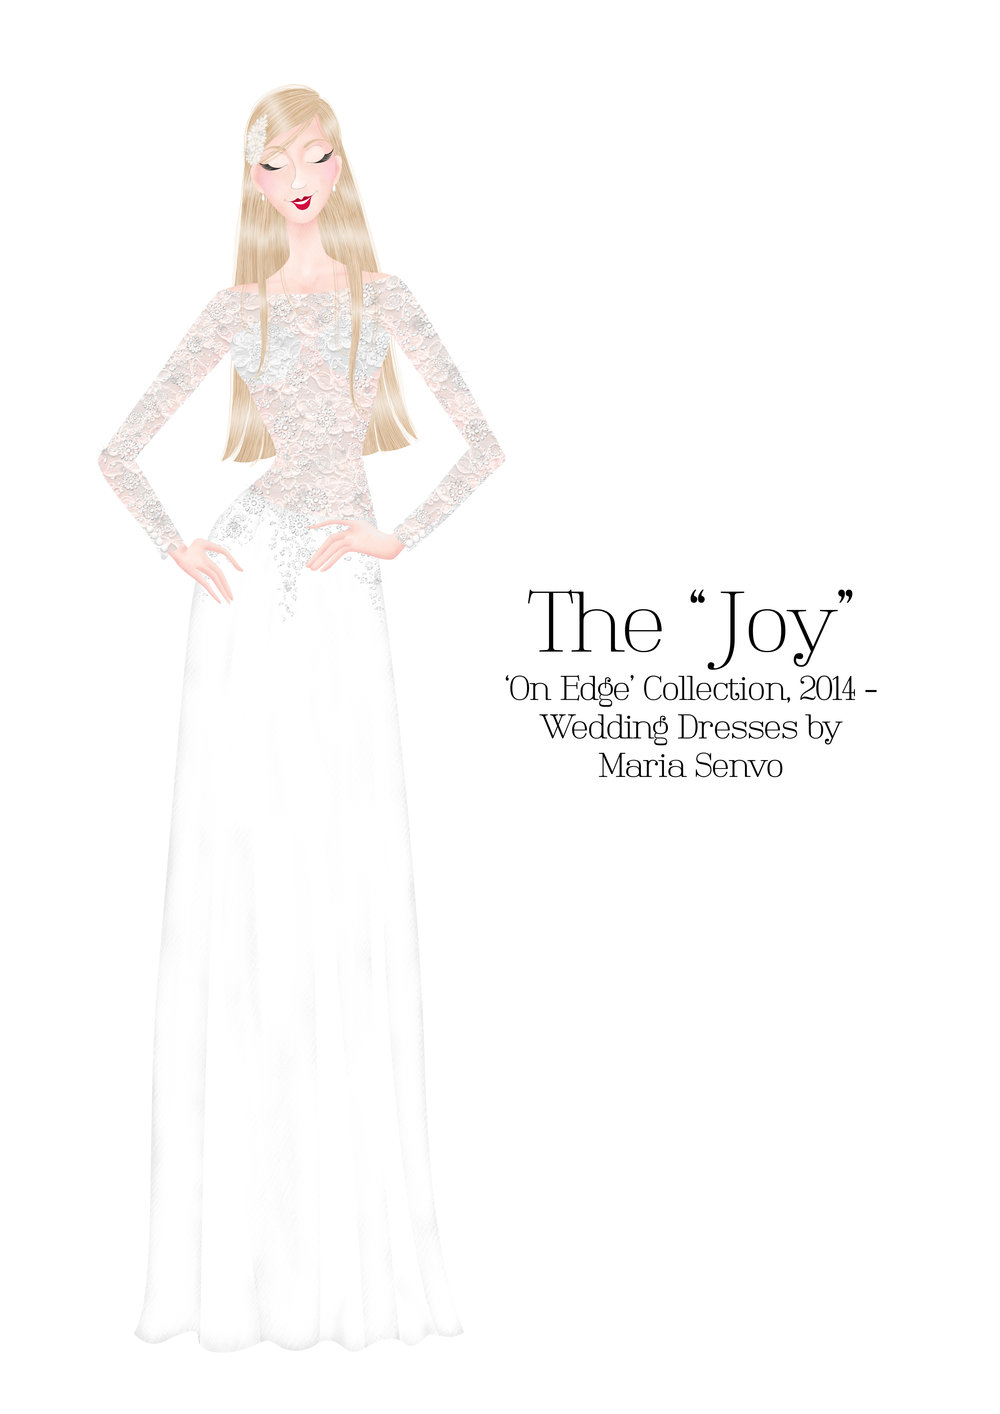 Hannah-Weeks-Illustration-The-Joy.jpg